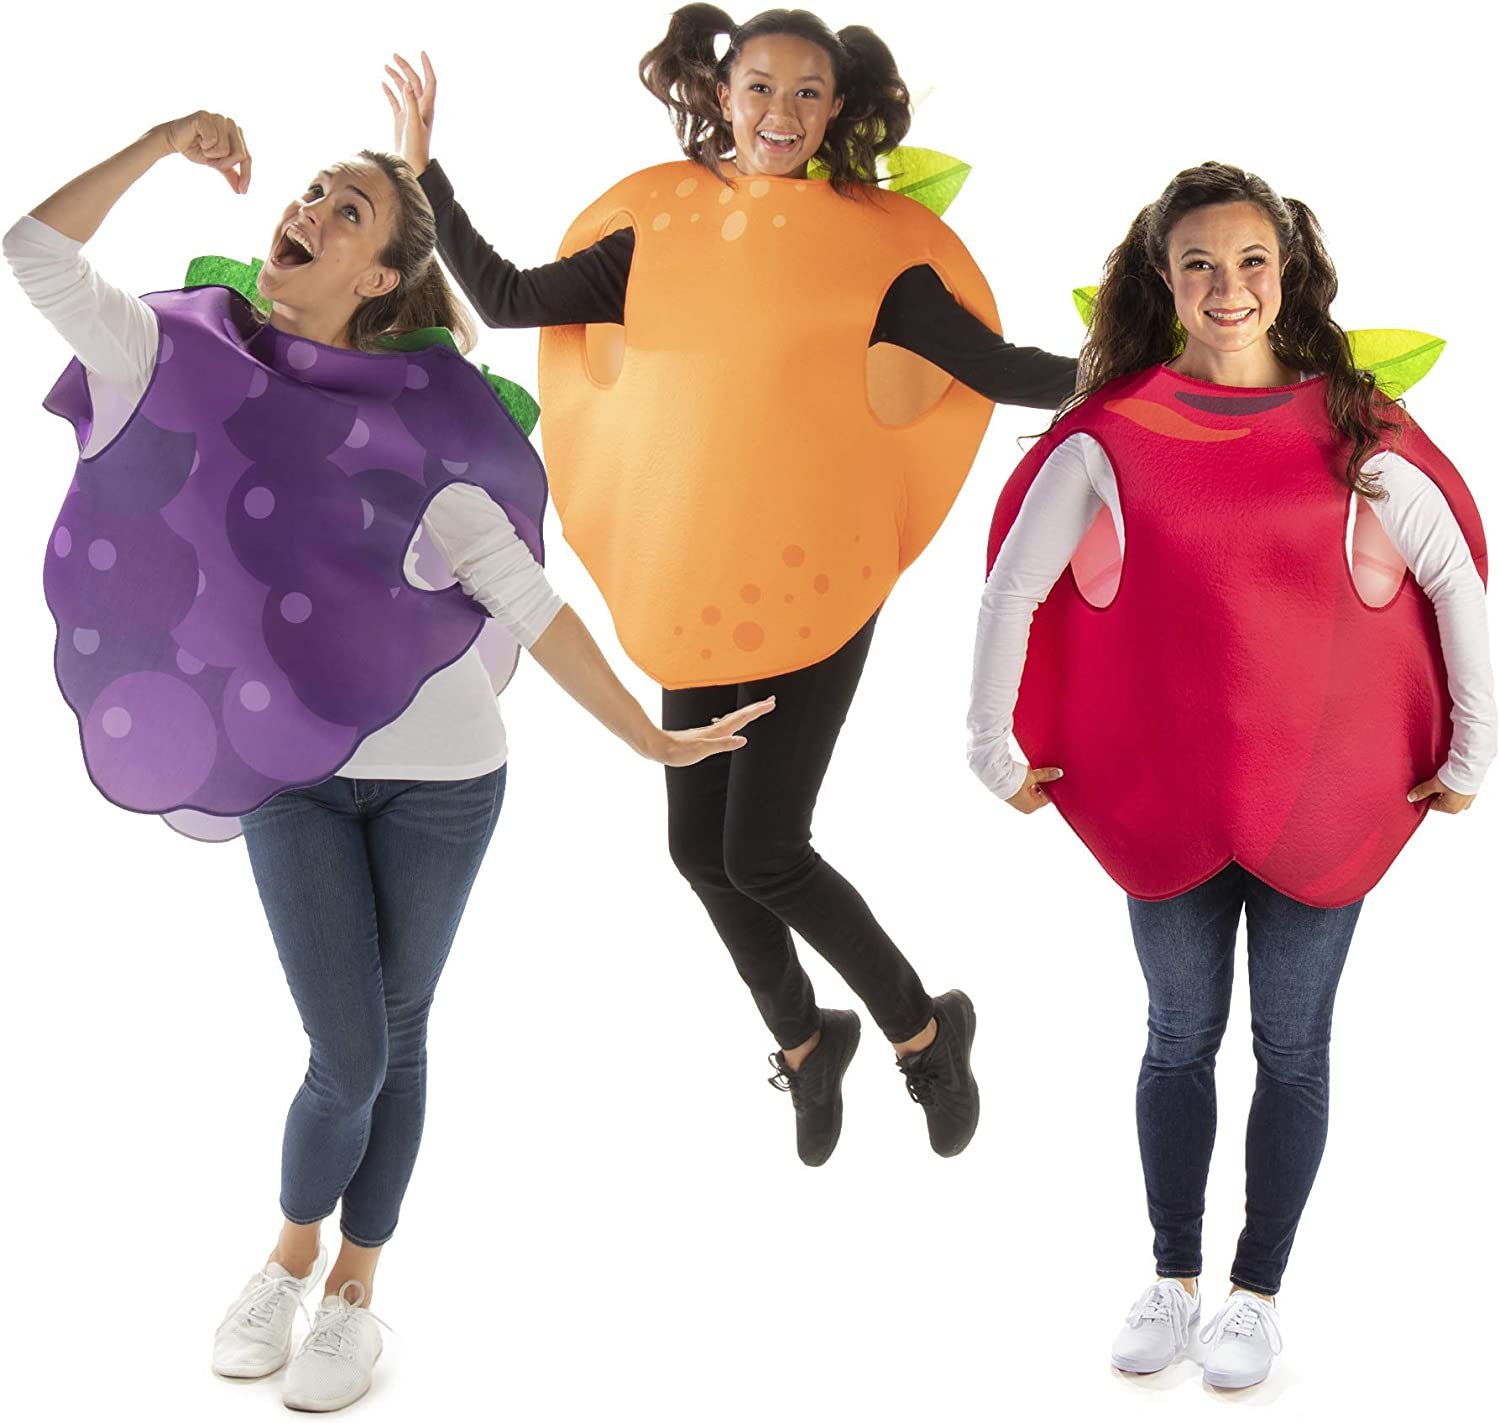 Fruit Salad - Apple, Orange & Grapes Group Costume - Funny Food Halloween Outfit